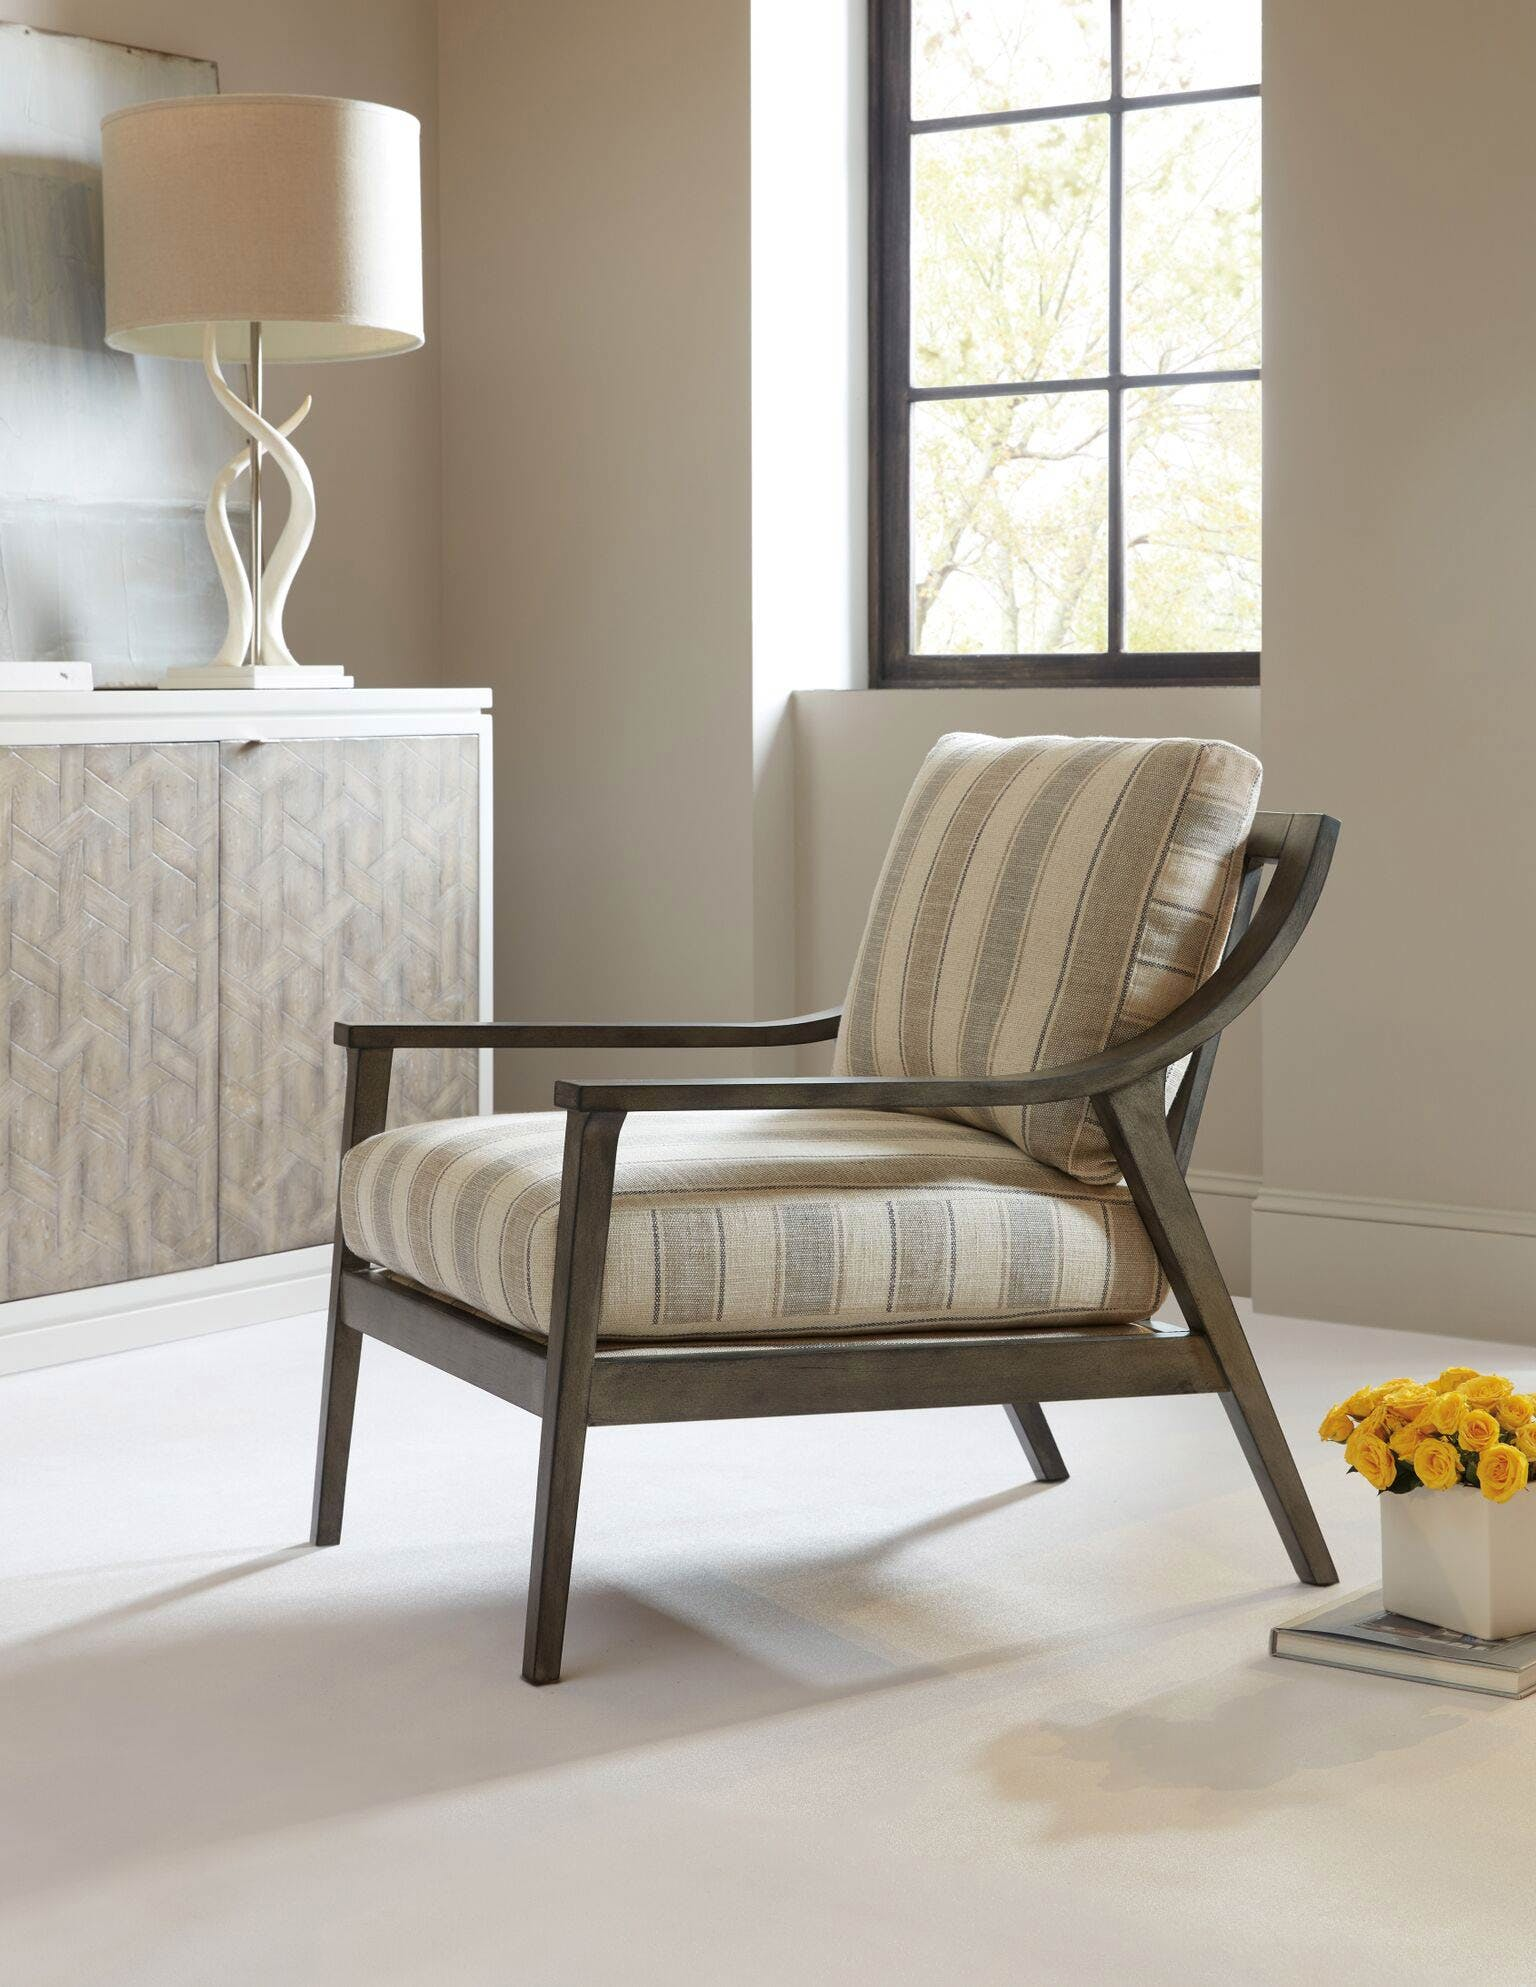 Sam Moore Chairs & Updated Classics u0026 Trendy Transitional Home Furnishings | Sam Moore